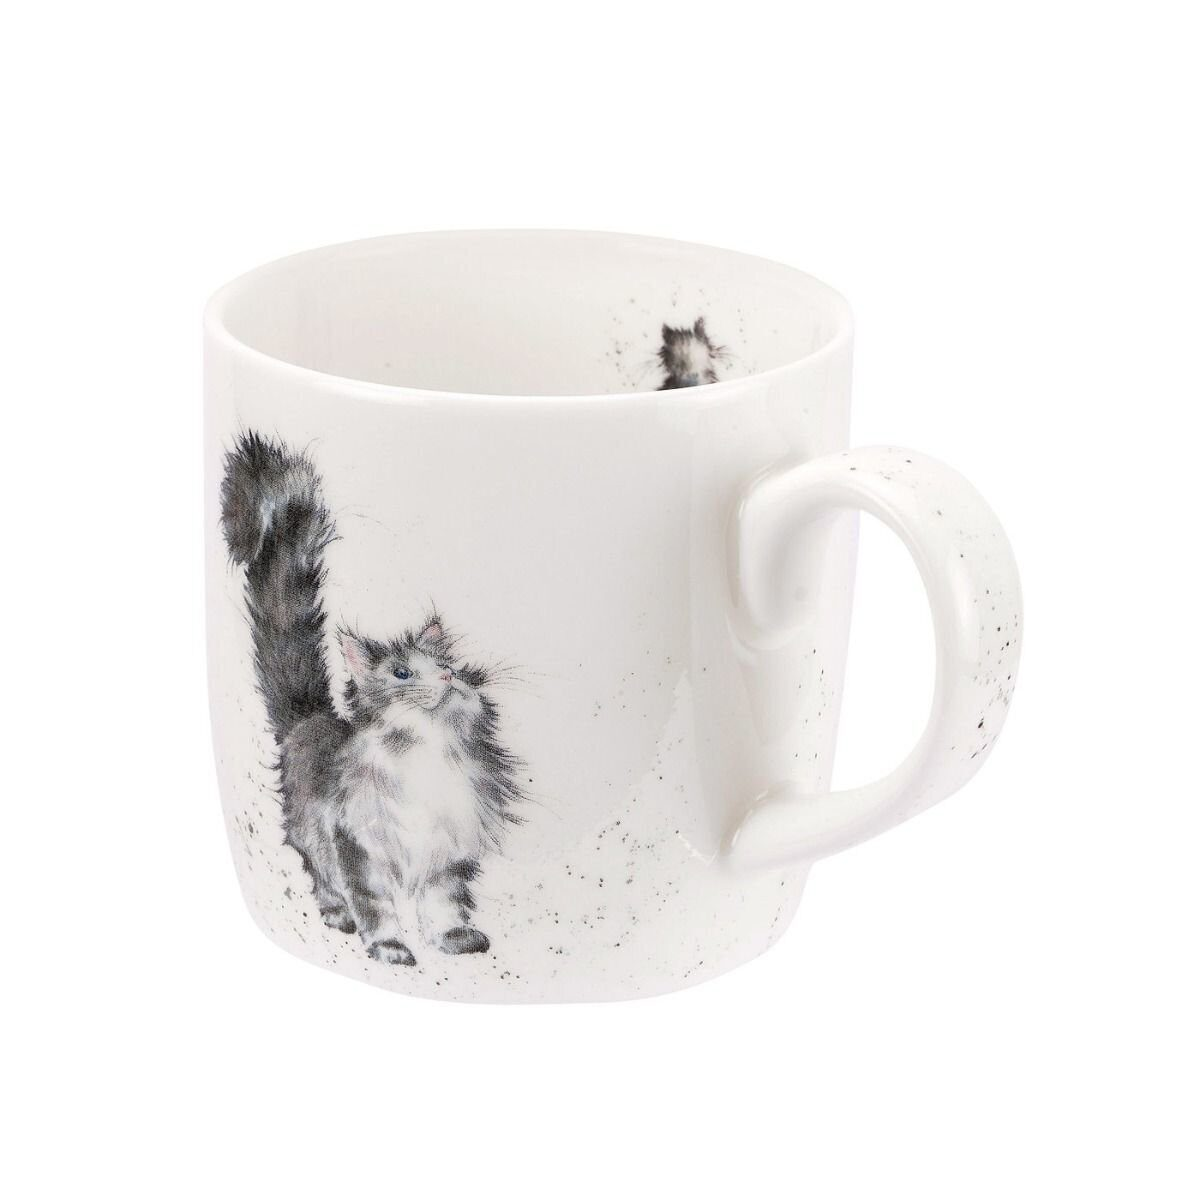 Royal Worcester Wrendale Designs Lady of the House Cat Fine Bone China Mug 1);